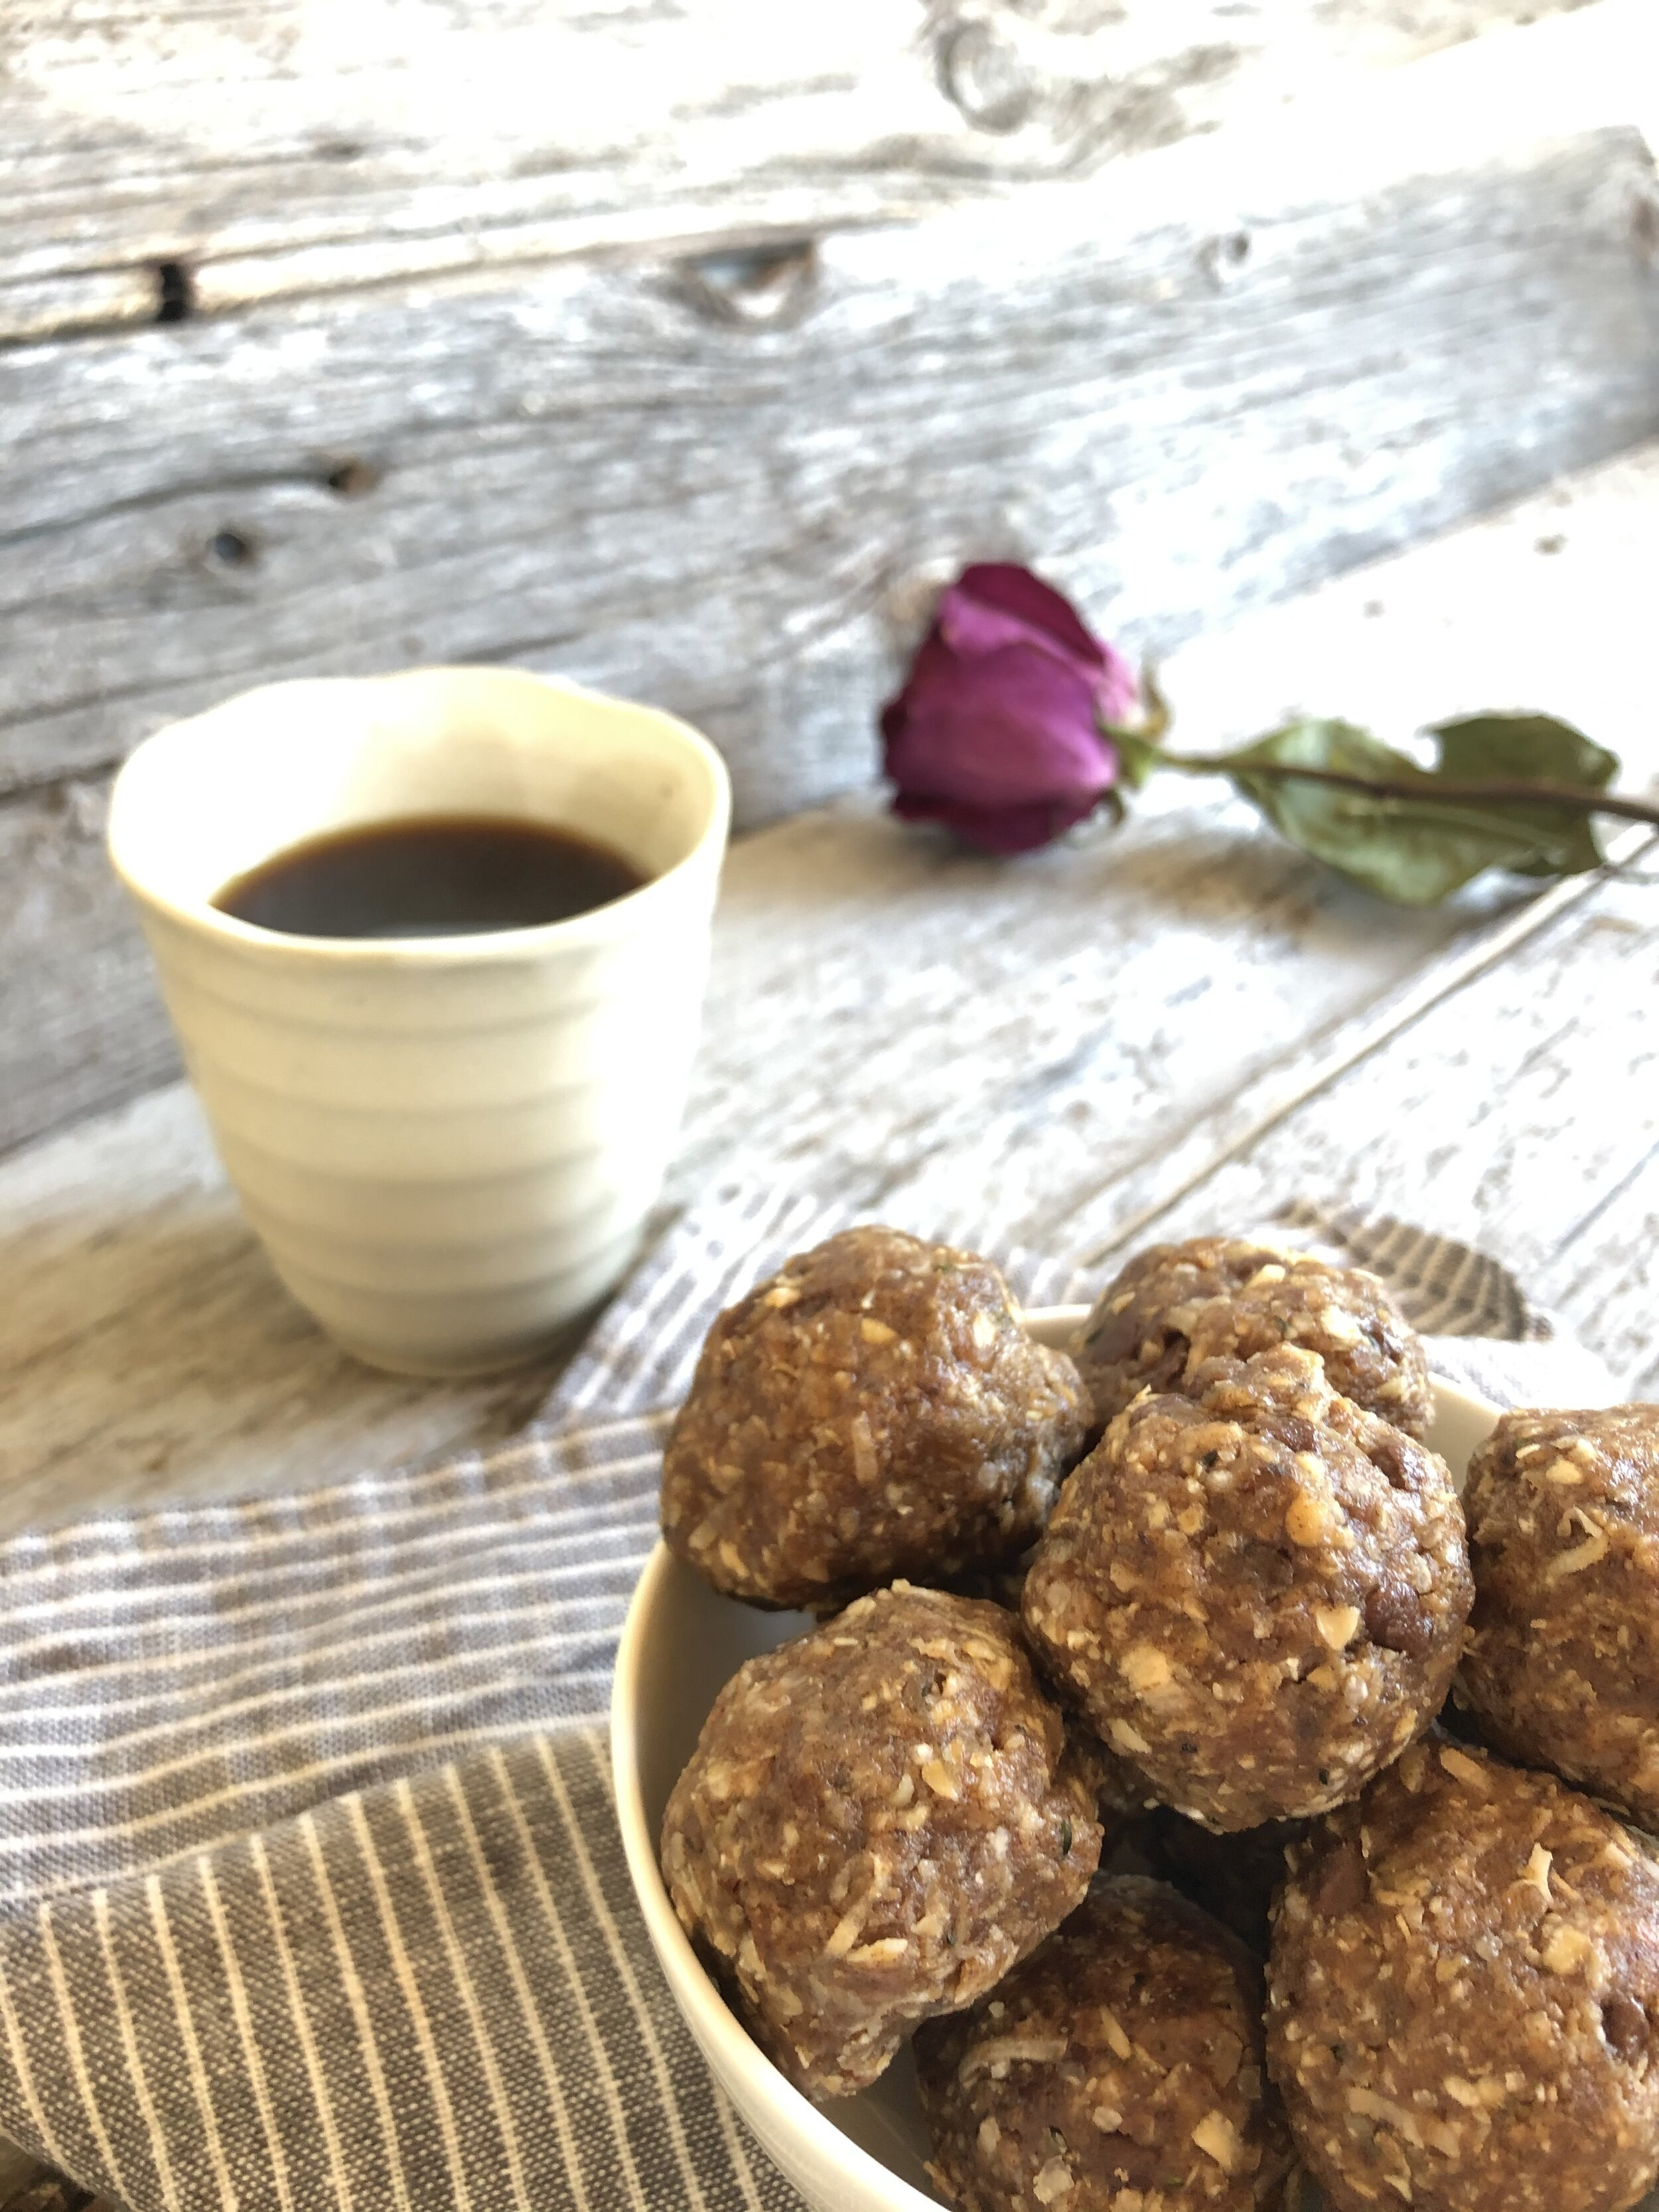 DIRECTIONS: eat one at a time - these energy balls are high in calories!  Something we all need when it comes to growing children, busy schedules, and adventures of all sorts.